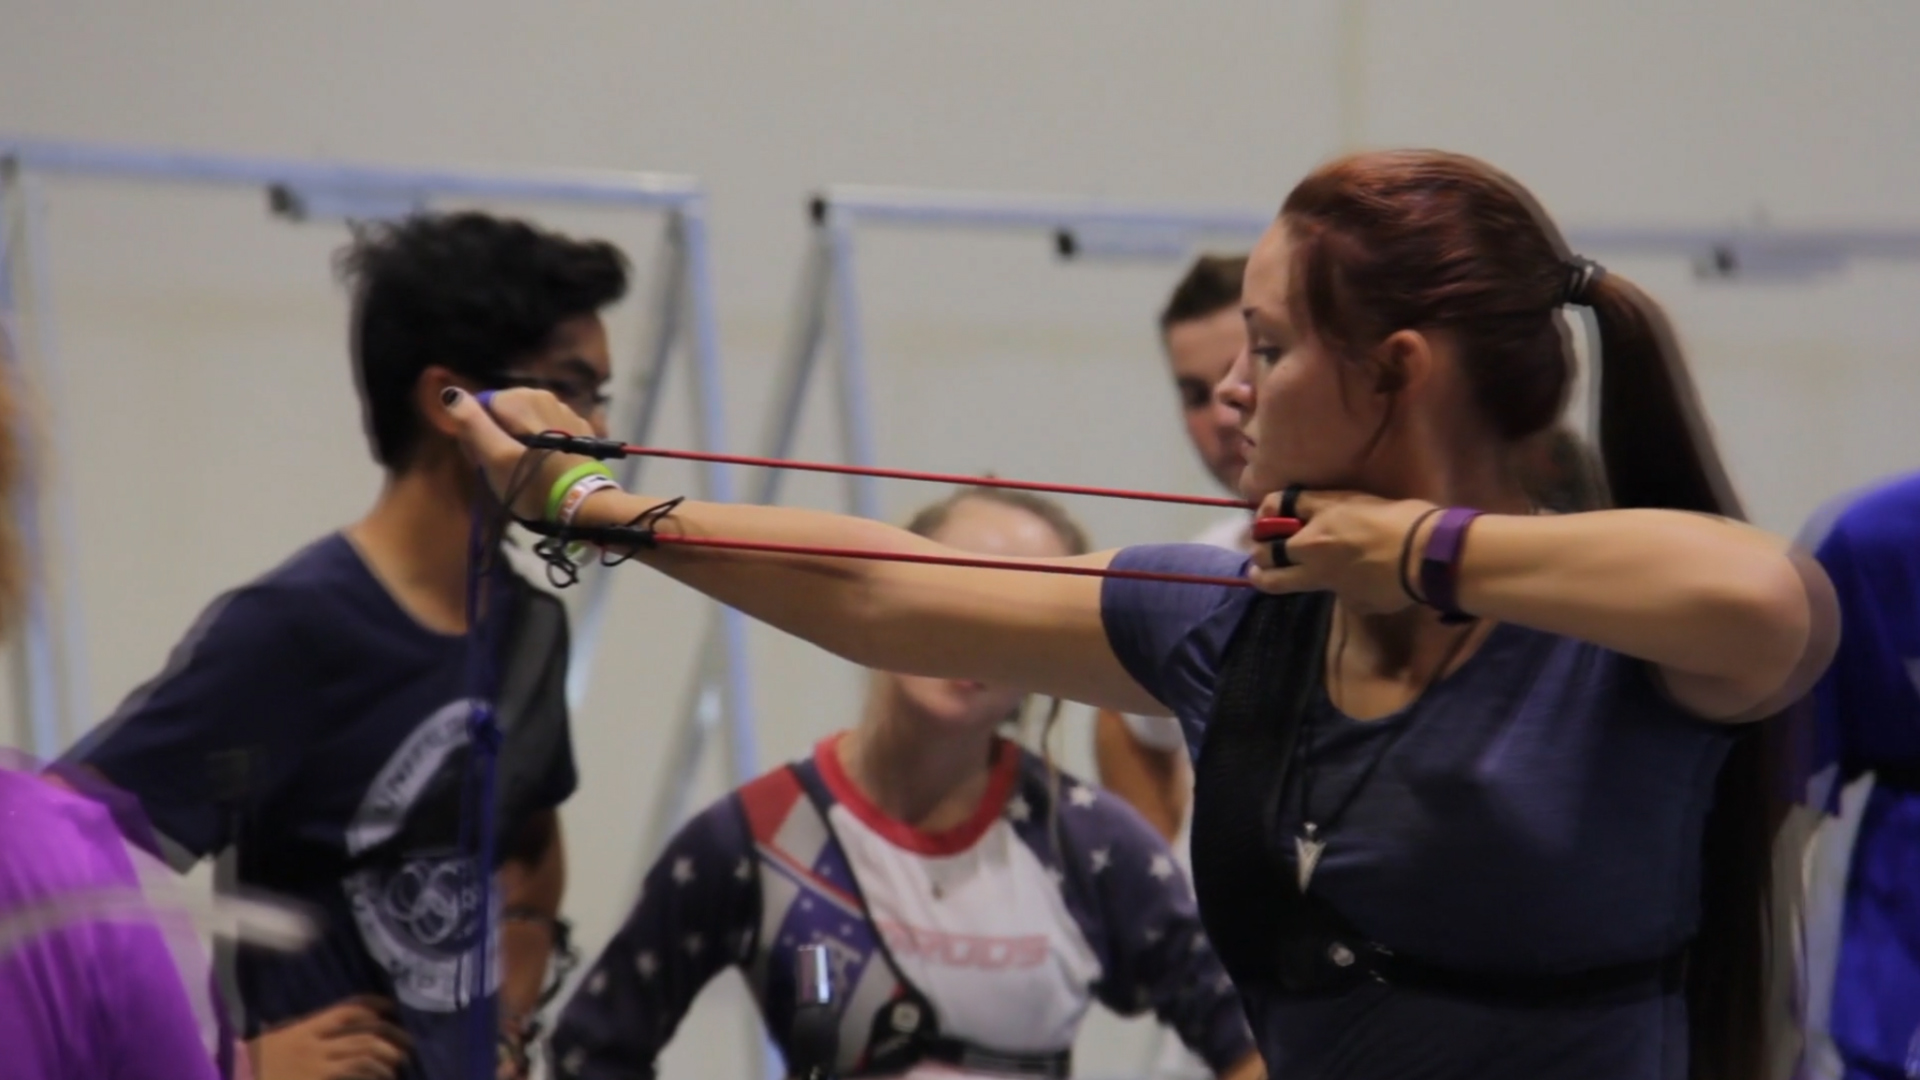 Try Archery - curious about archery?This class is the place to start!